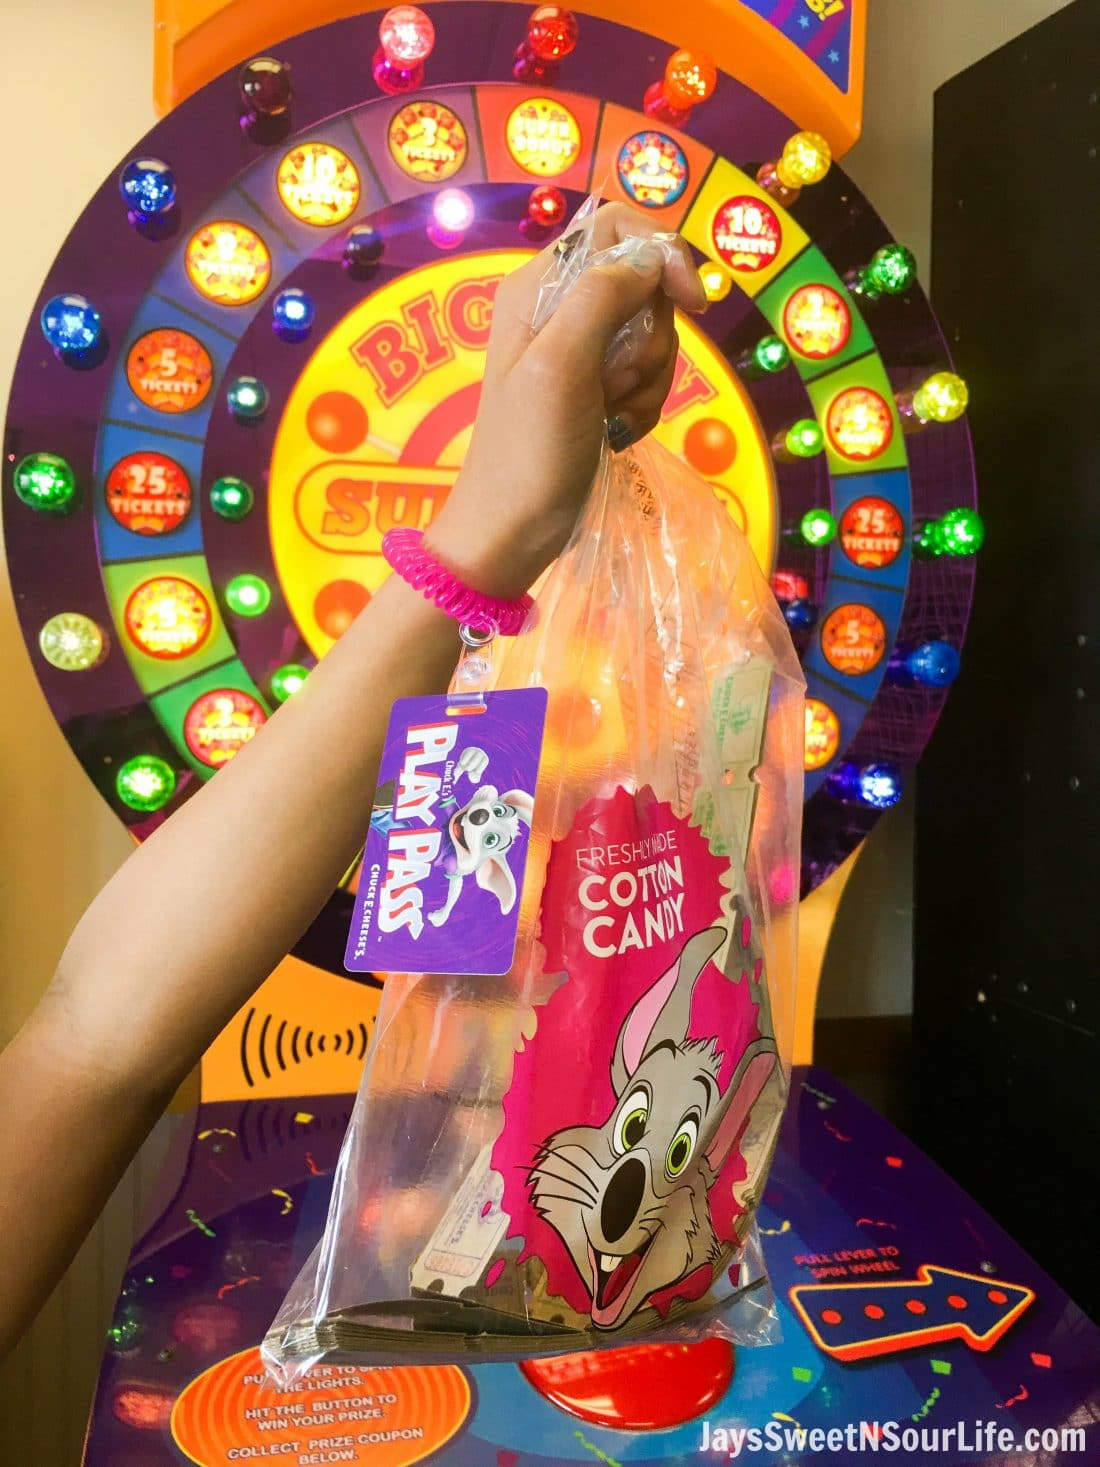 Chuck e cheeses VIP birthday Party Play Pass with wrist band, holding a bag of tickets. Book your party today and have guests enjoy 2 hours of unlimited game play.